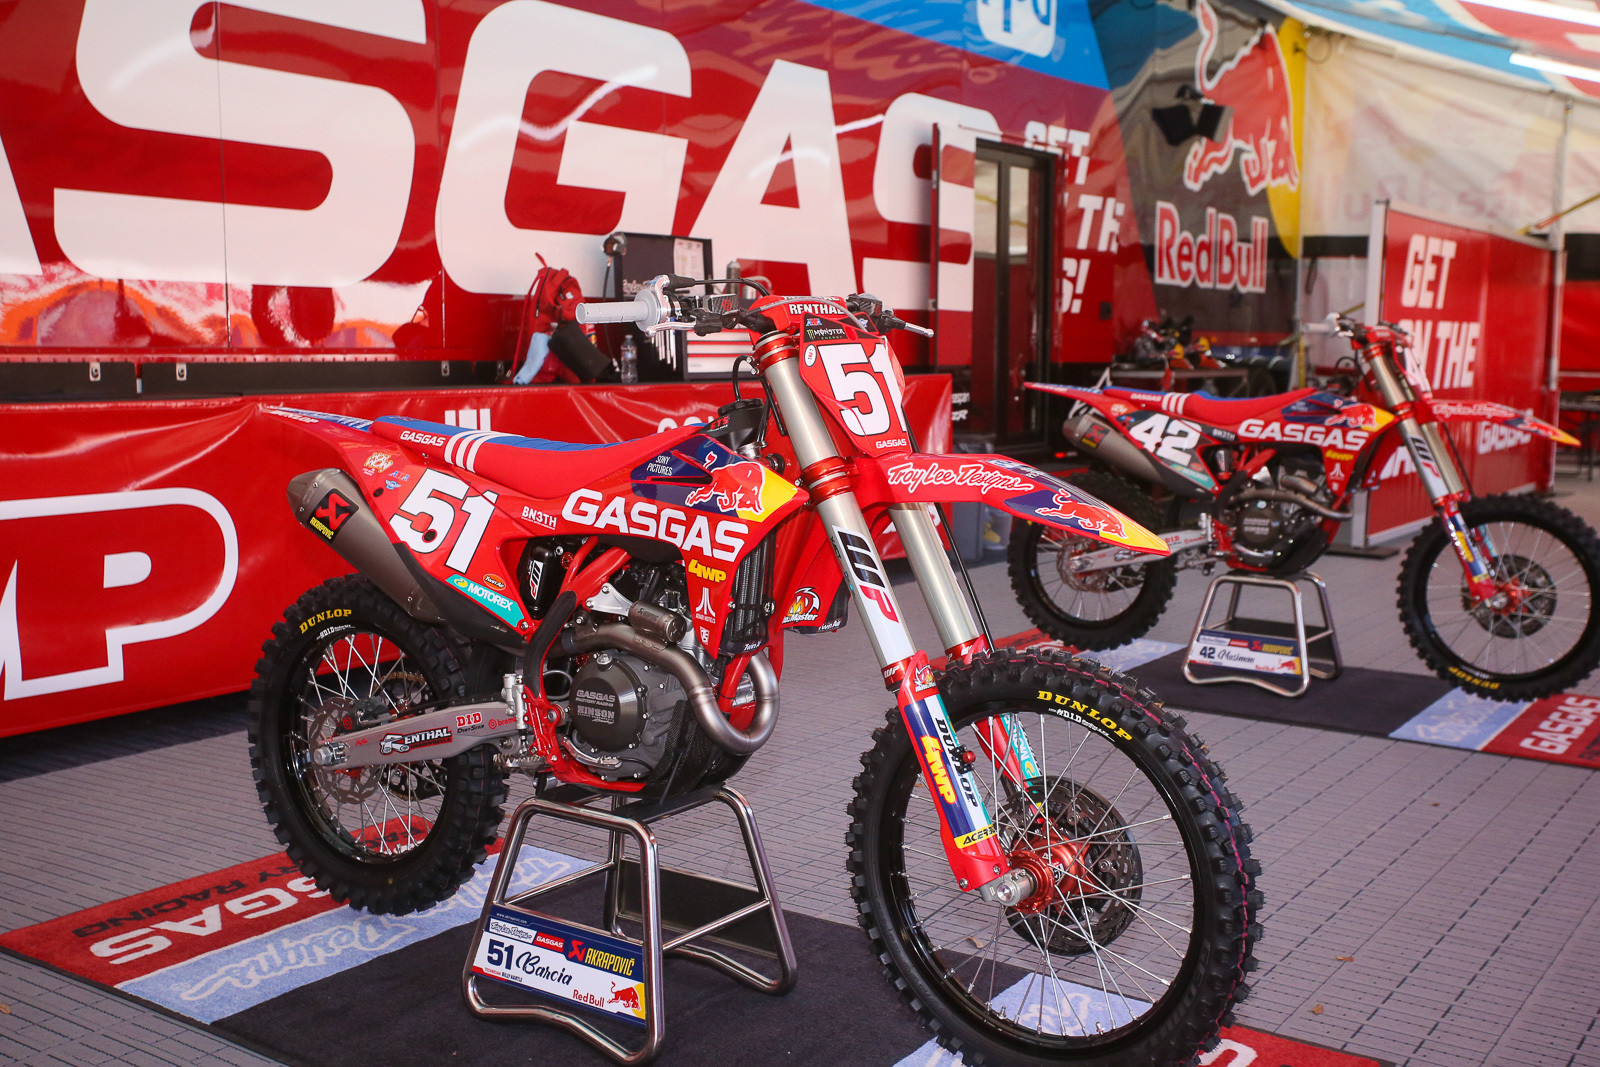 How's that for a sweet-looking bike and team setup? Justin will have the red plate again for round three.